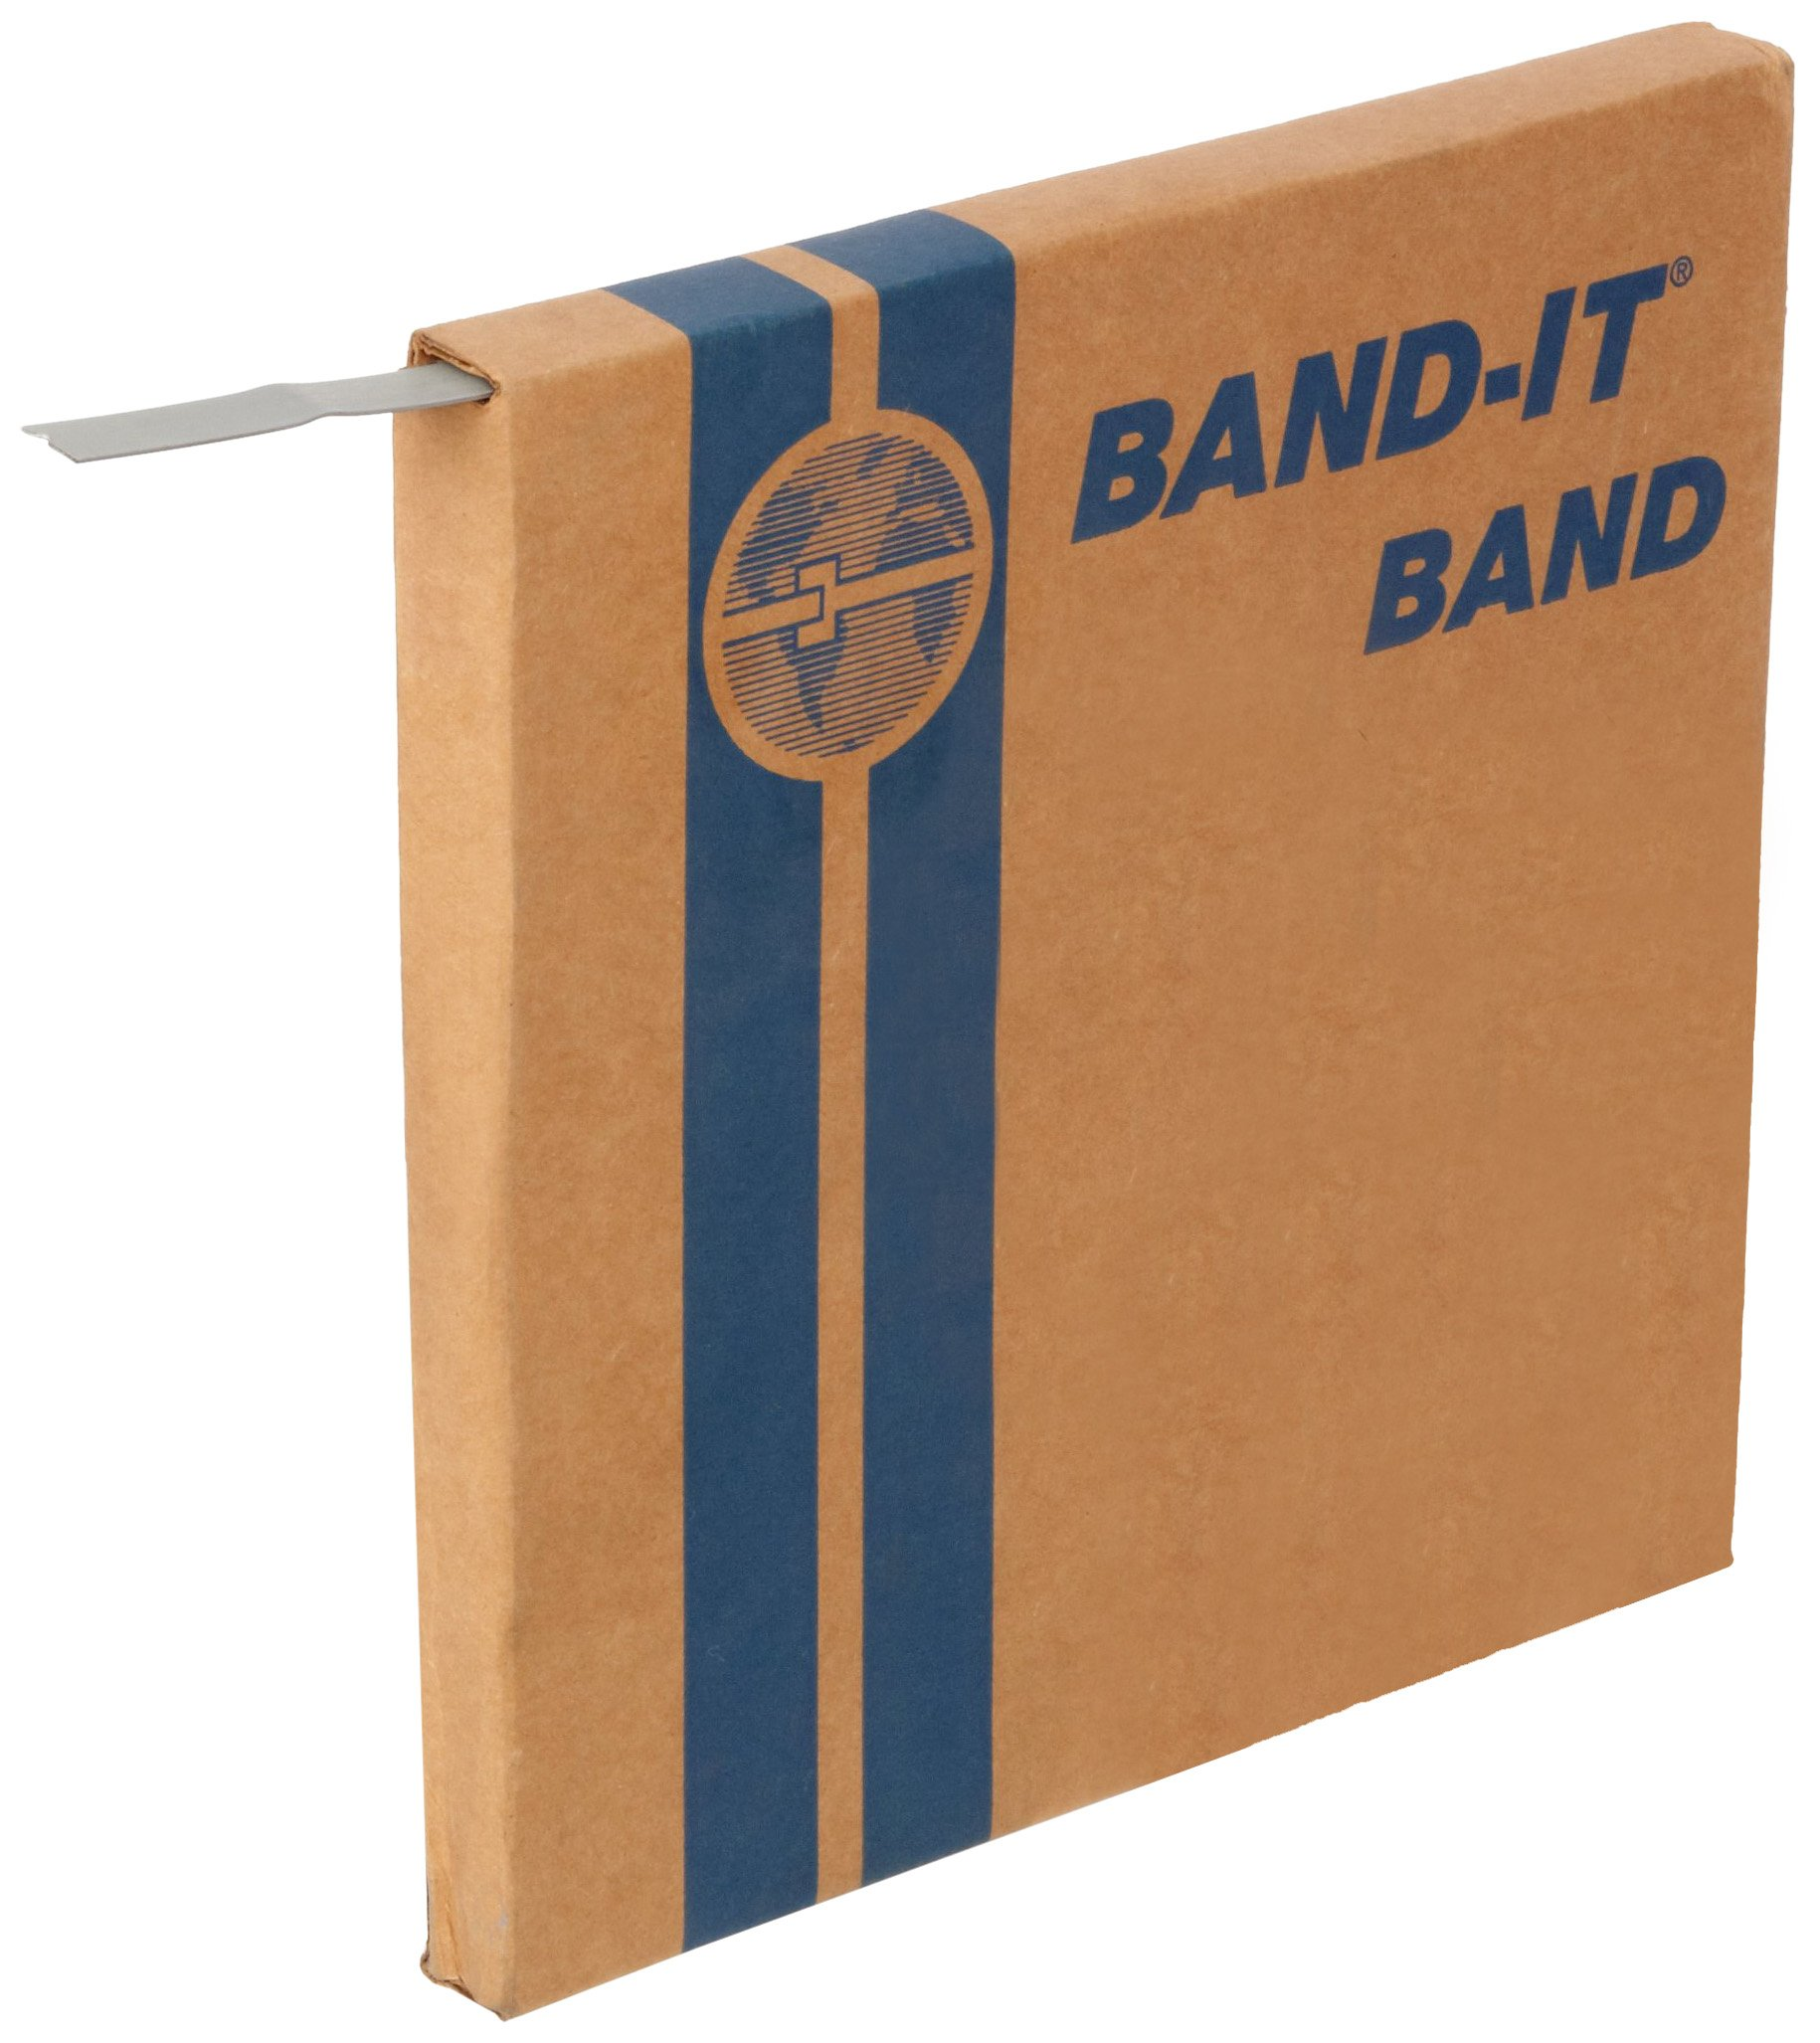 BAND-IT C30499 Galvanized Carbon Steel Band, 1/2'' Width X 0.030'' Thick, 100 Feet Roll